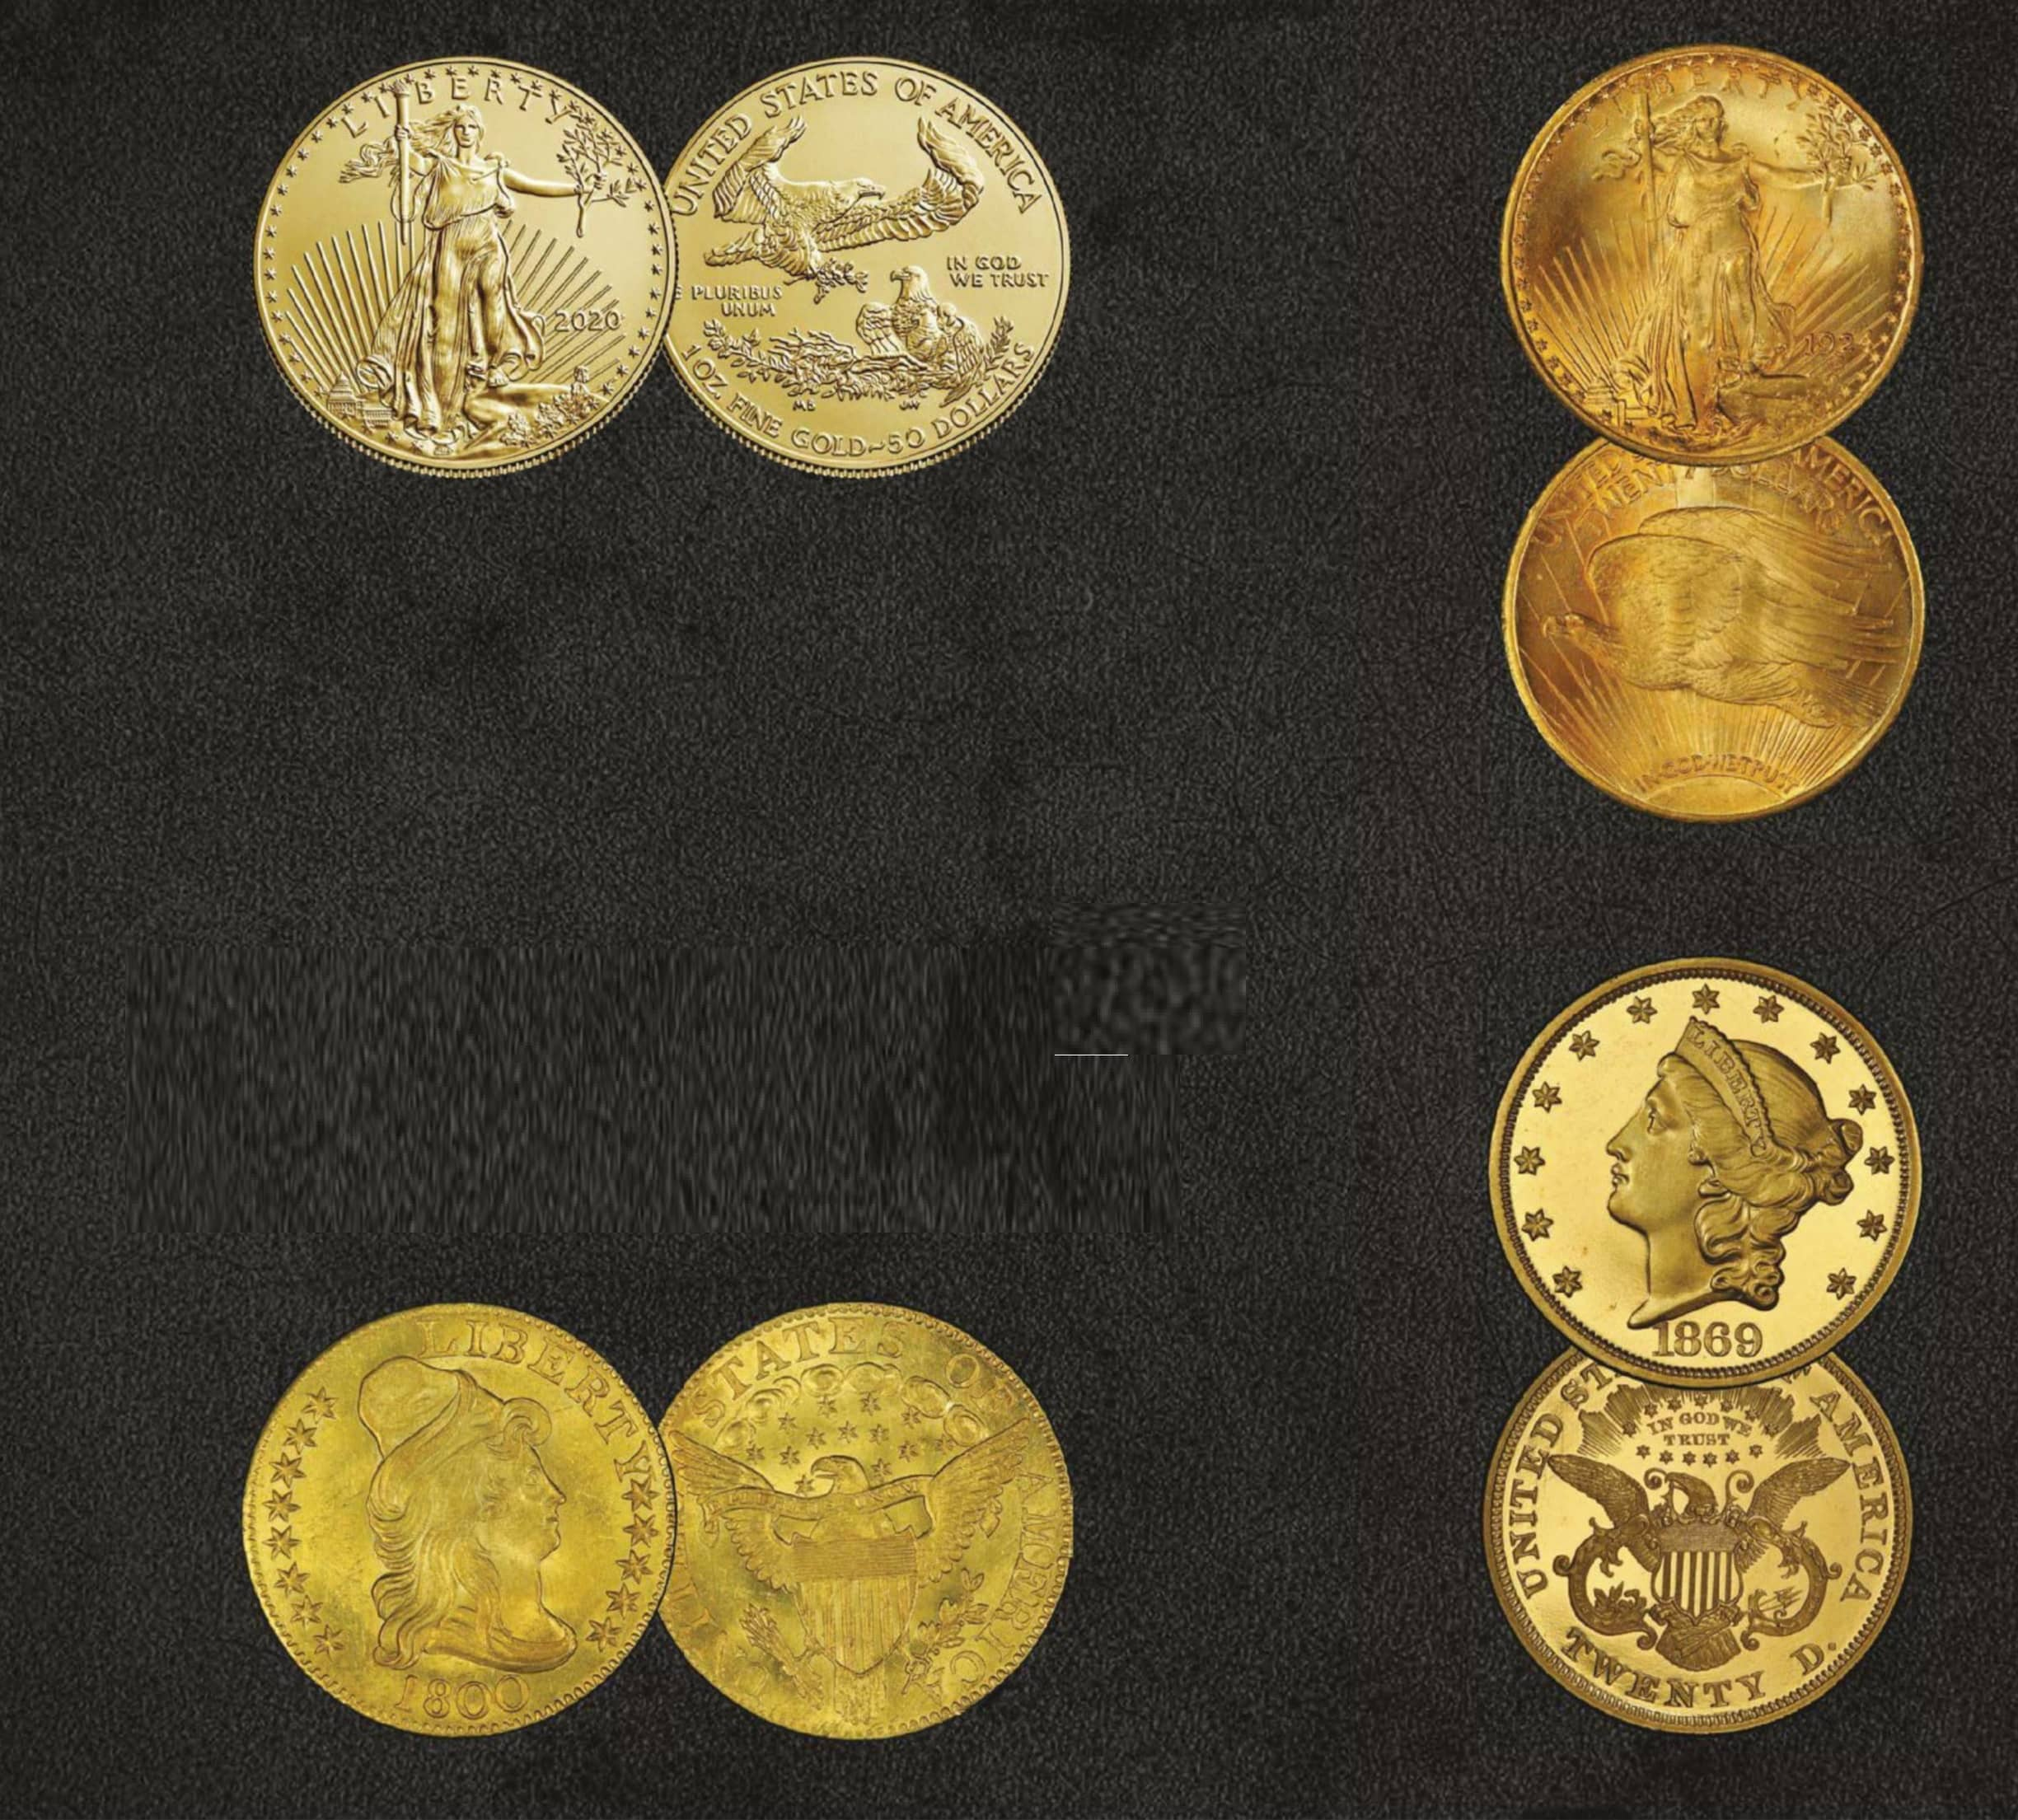 GOLDEN ADVICE FOR BUYING GOLD COINS